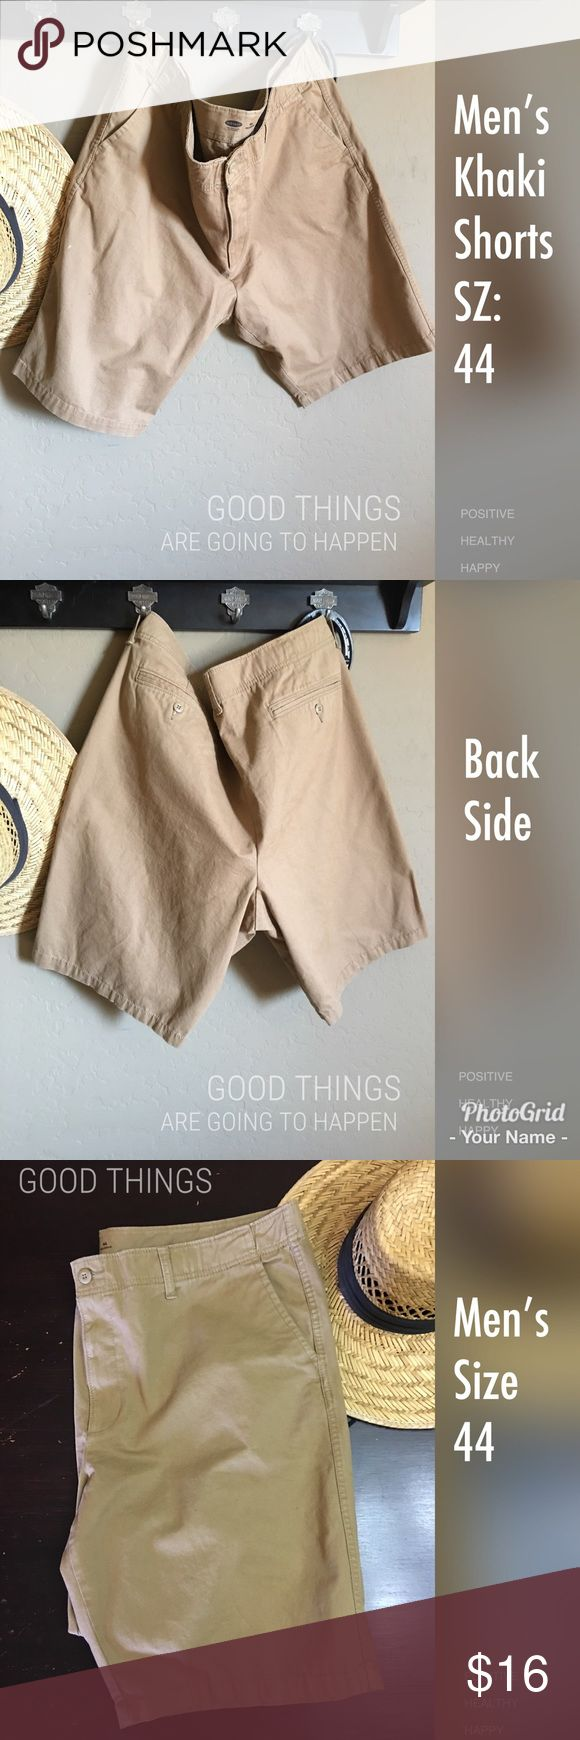 Men's Khaki Shorts Great condition used item. Old Navy men's Khaki Shorts. Size 44, great for your big and tall clothing. Any questions please ask Old Navy Shorts